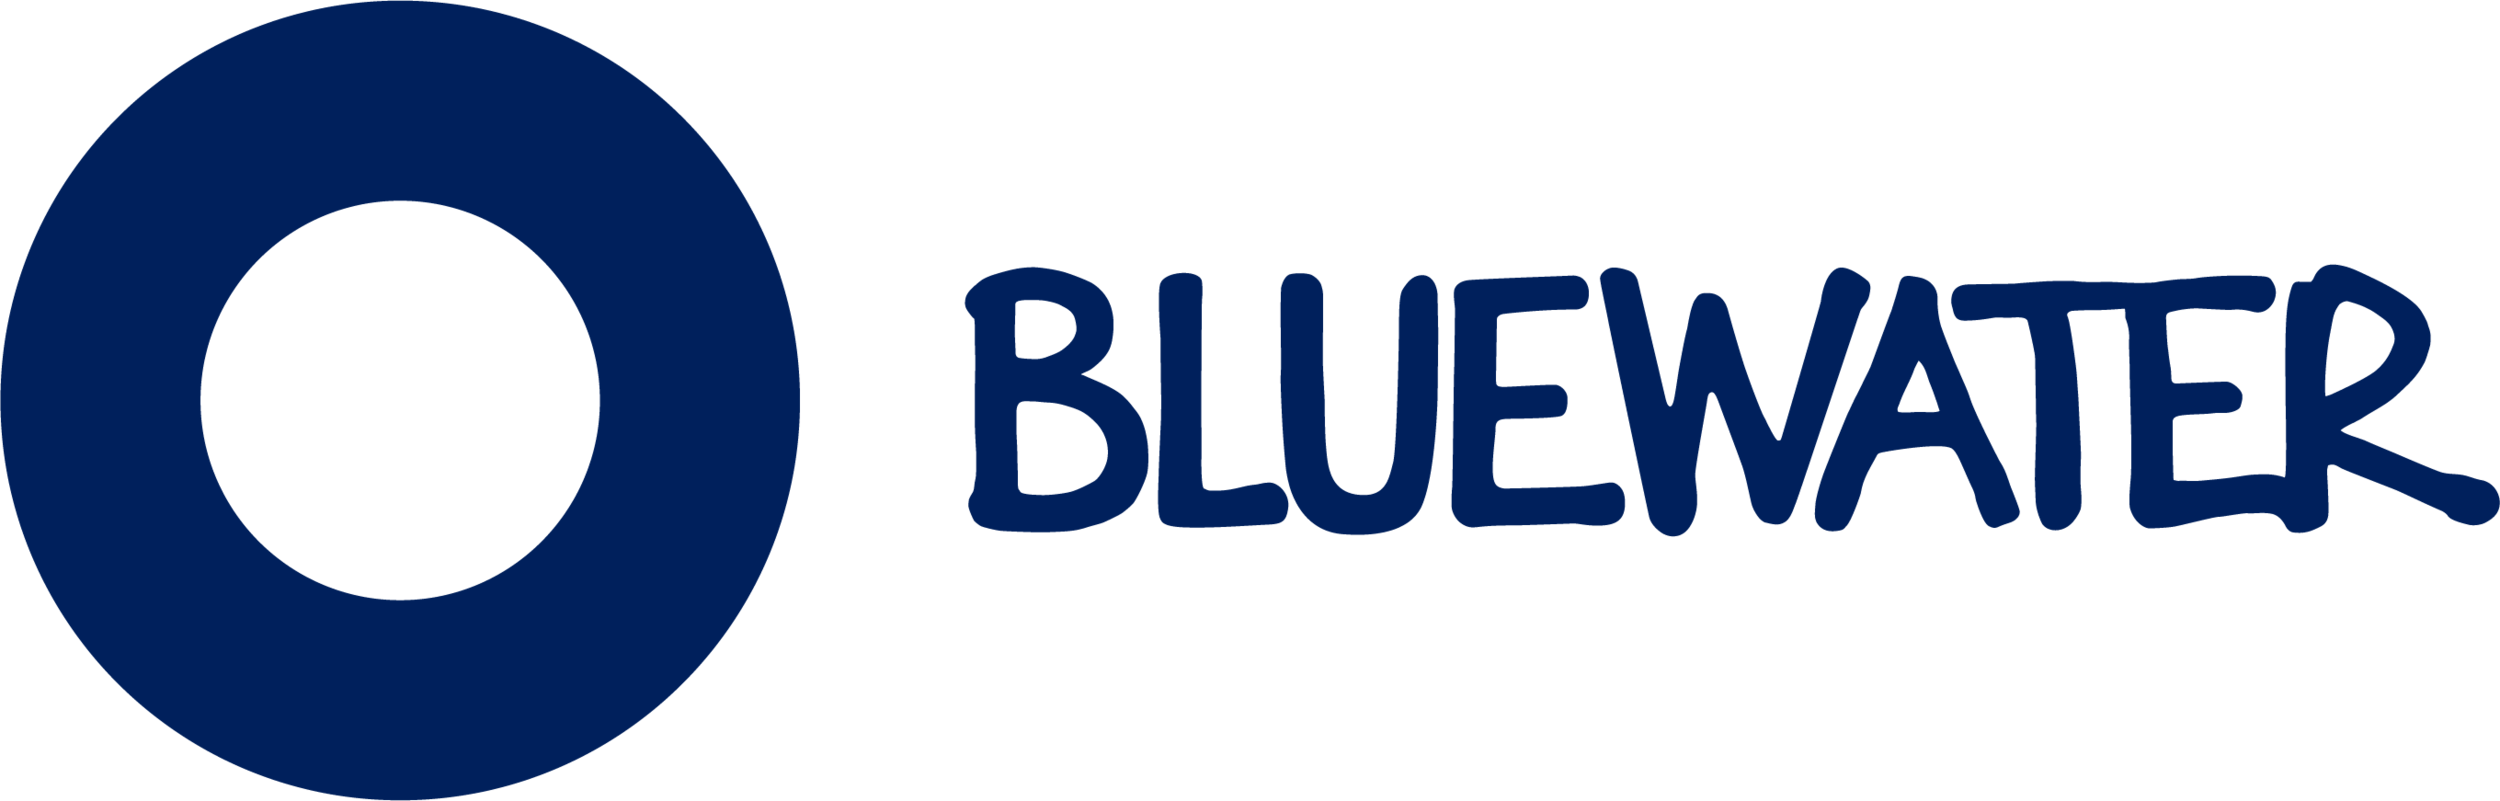 Bluewater Official Logo Blue RGB.png